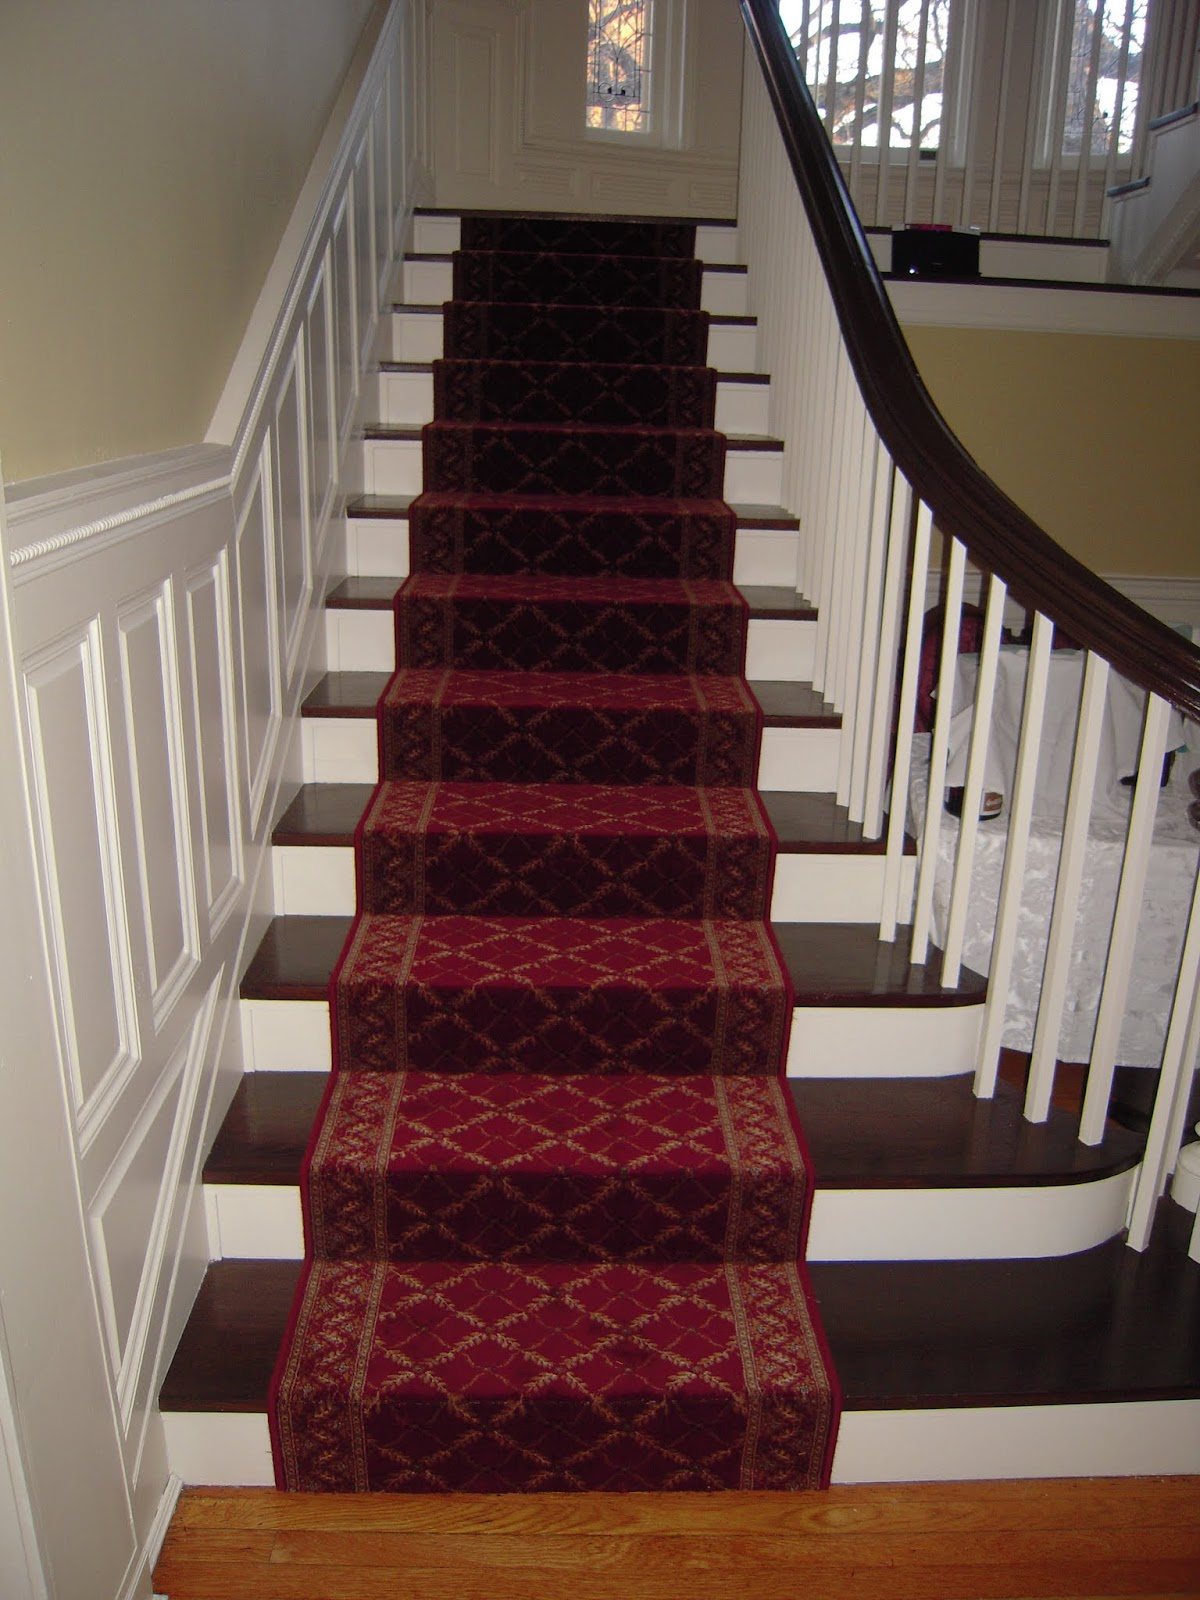 Stair Treads Runners - Rugs - The Home Depot